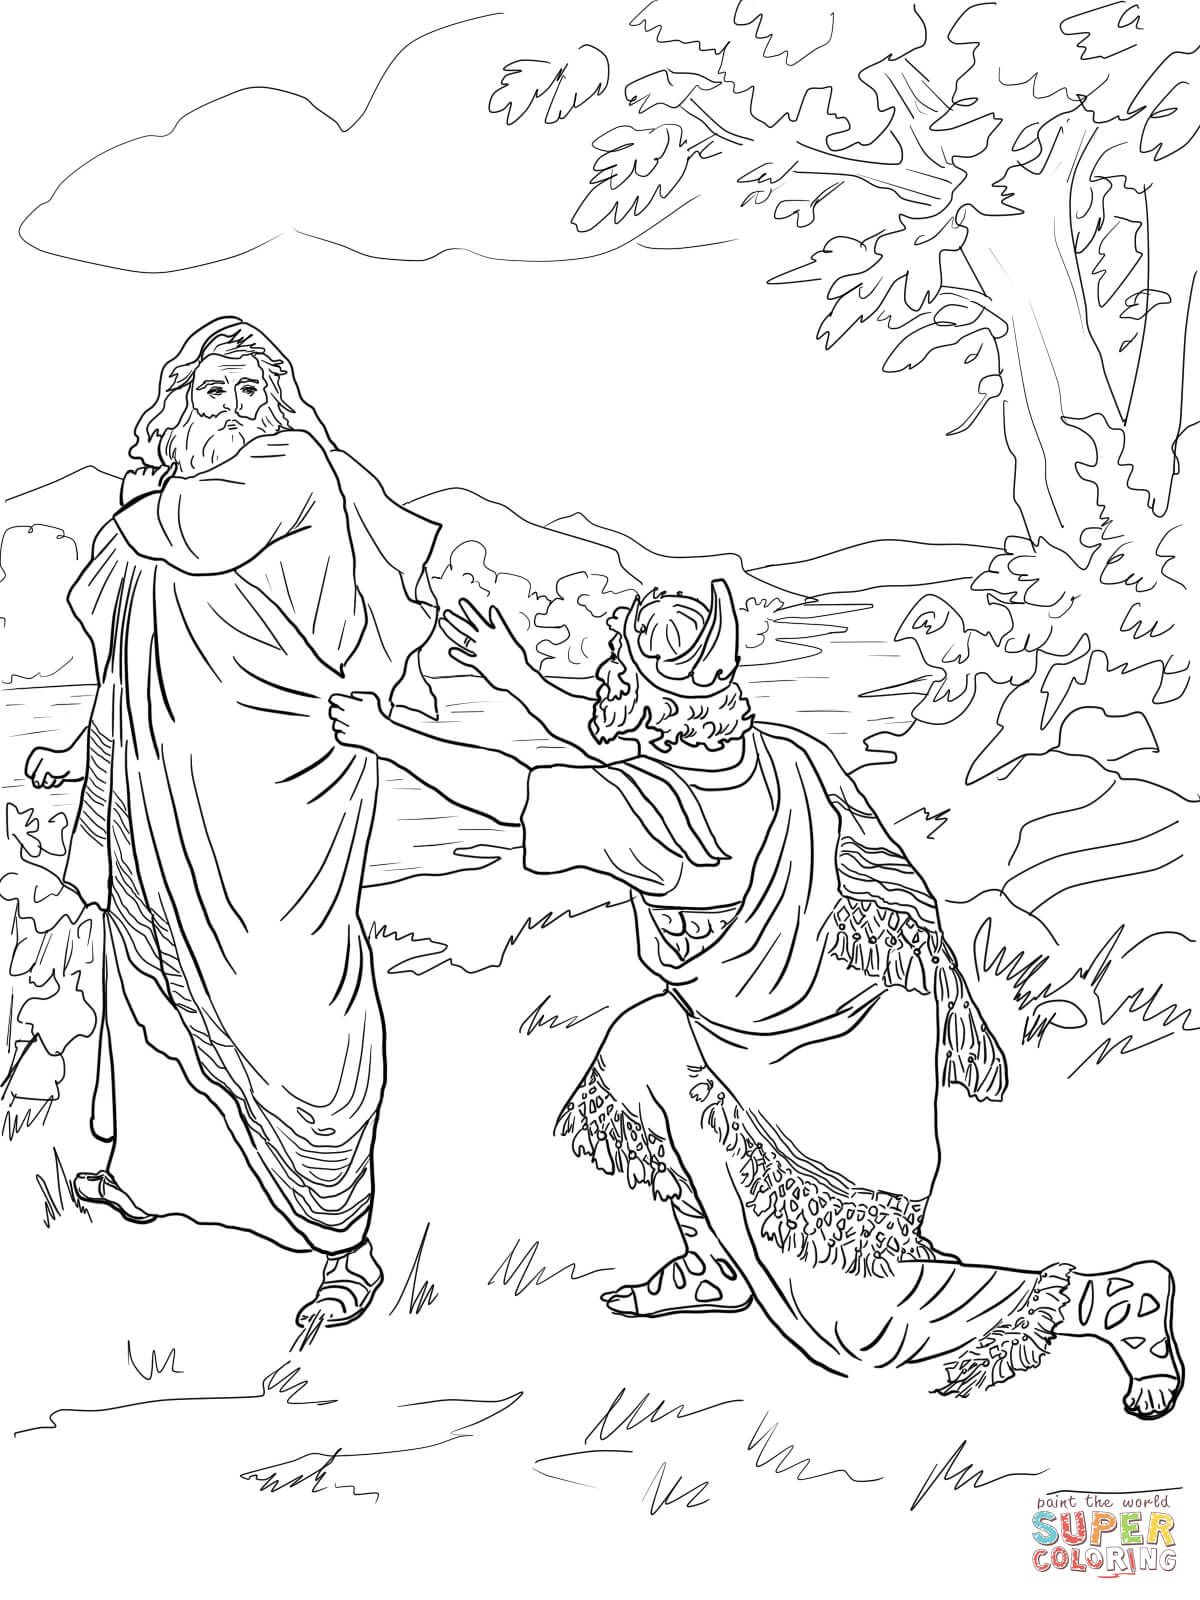 bible coloring pages king saul saul becomes israels first king in king saul coloring page pages coloring saul bible king